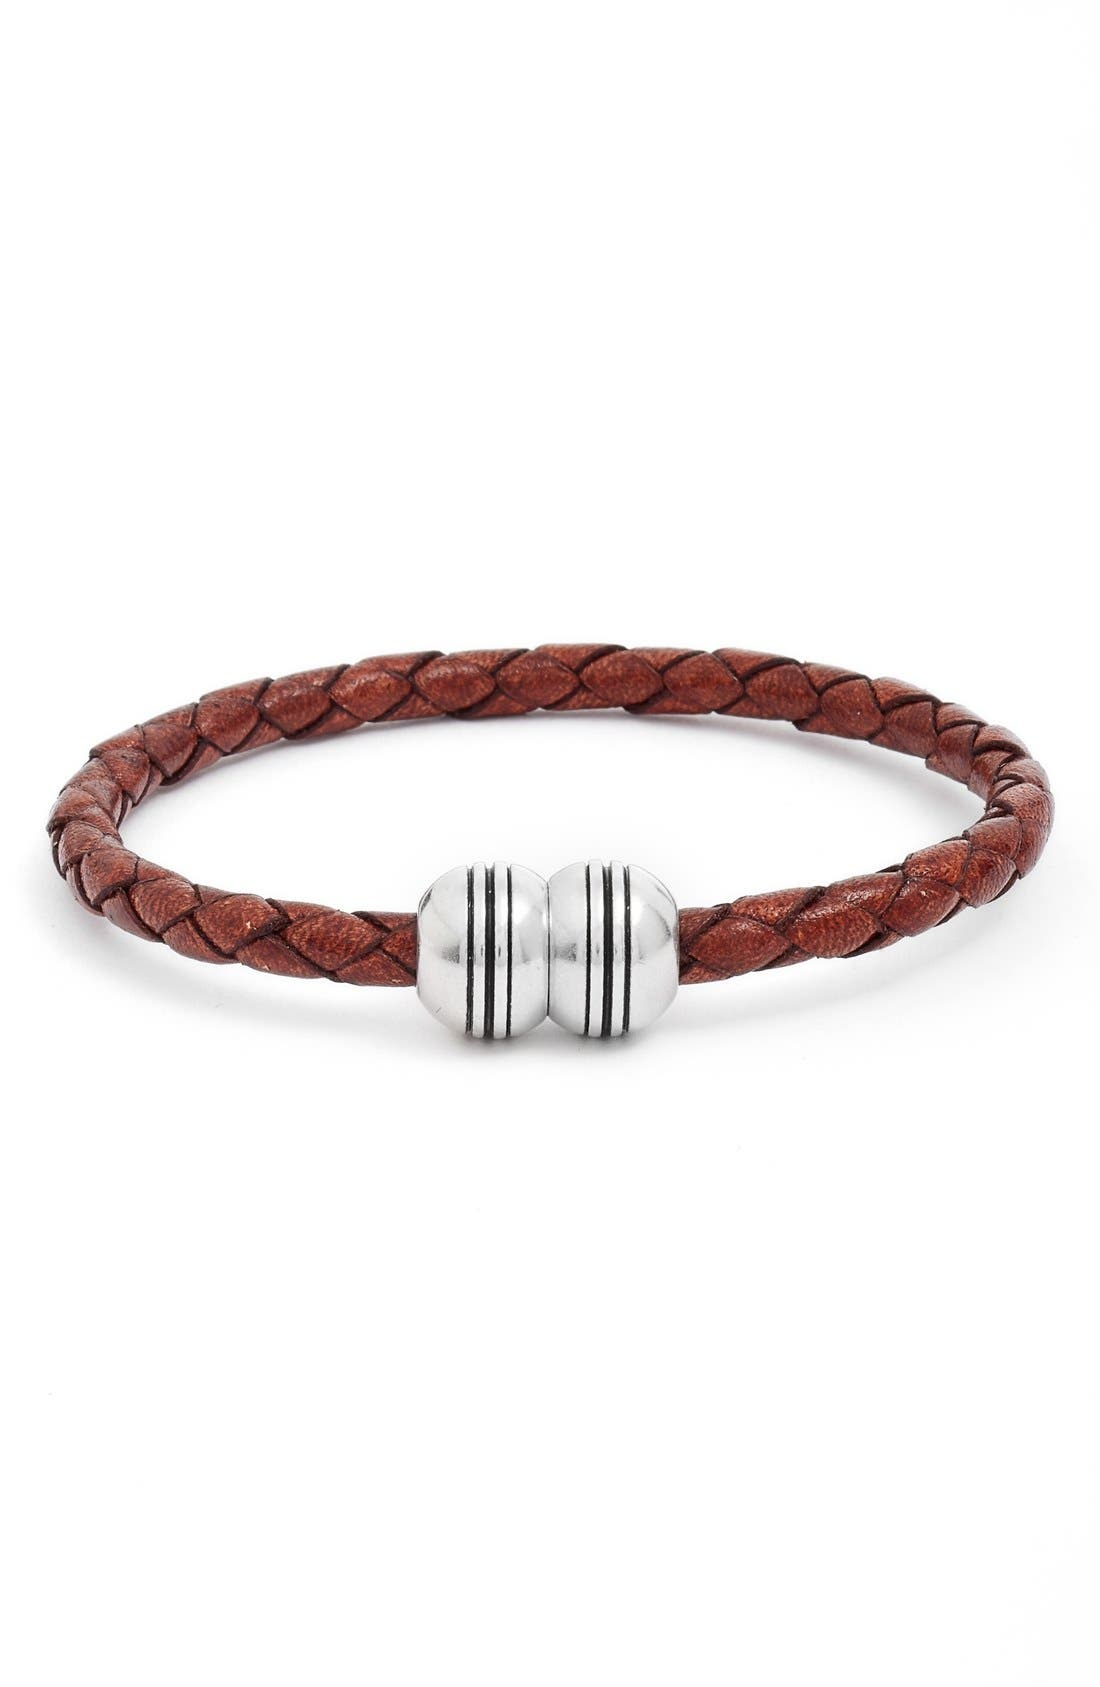 Alternate Image 1 Selected - Torino Belts Braided Leather Bracelet